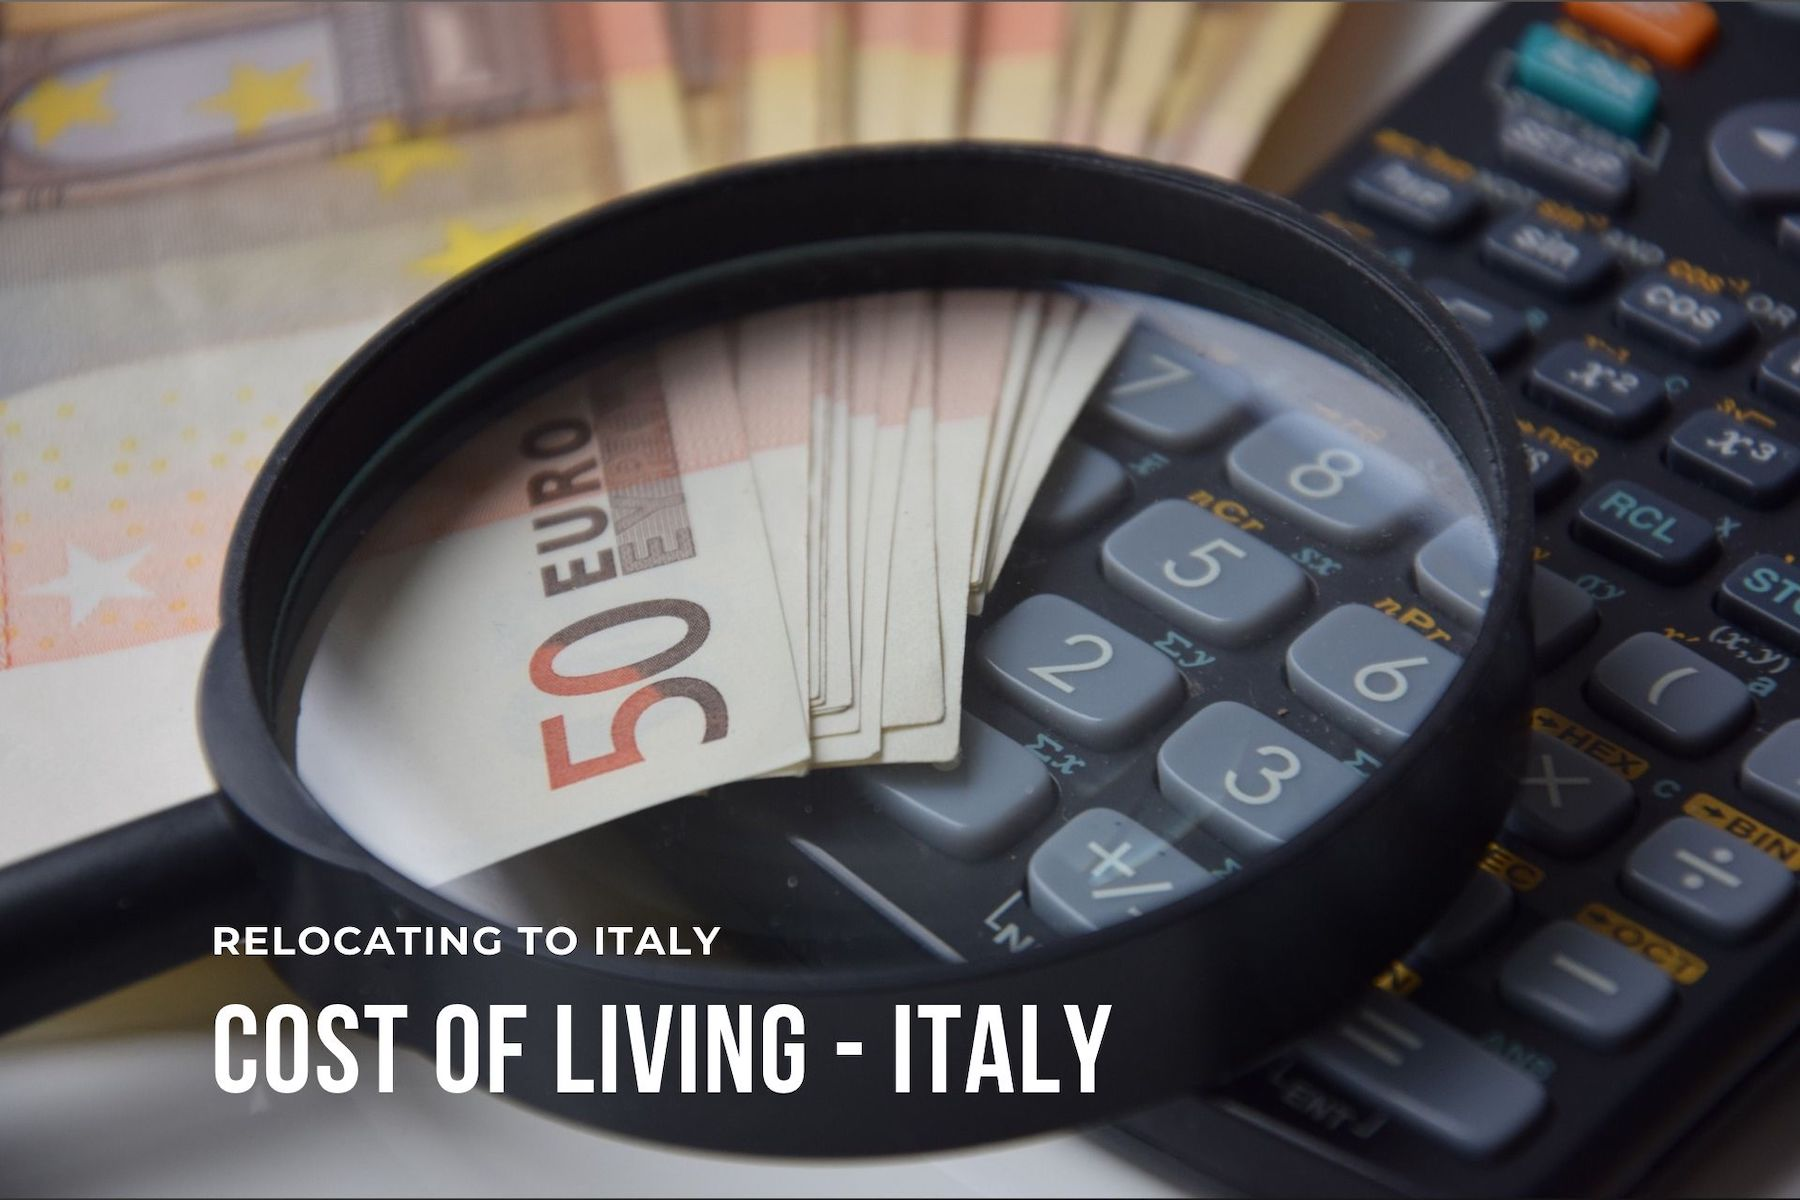 Cost of Living in Italy